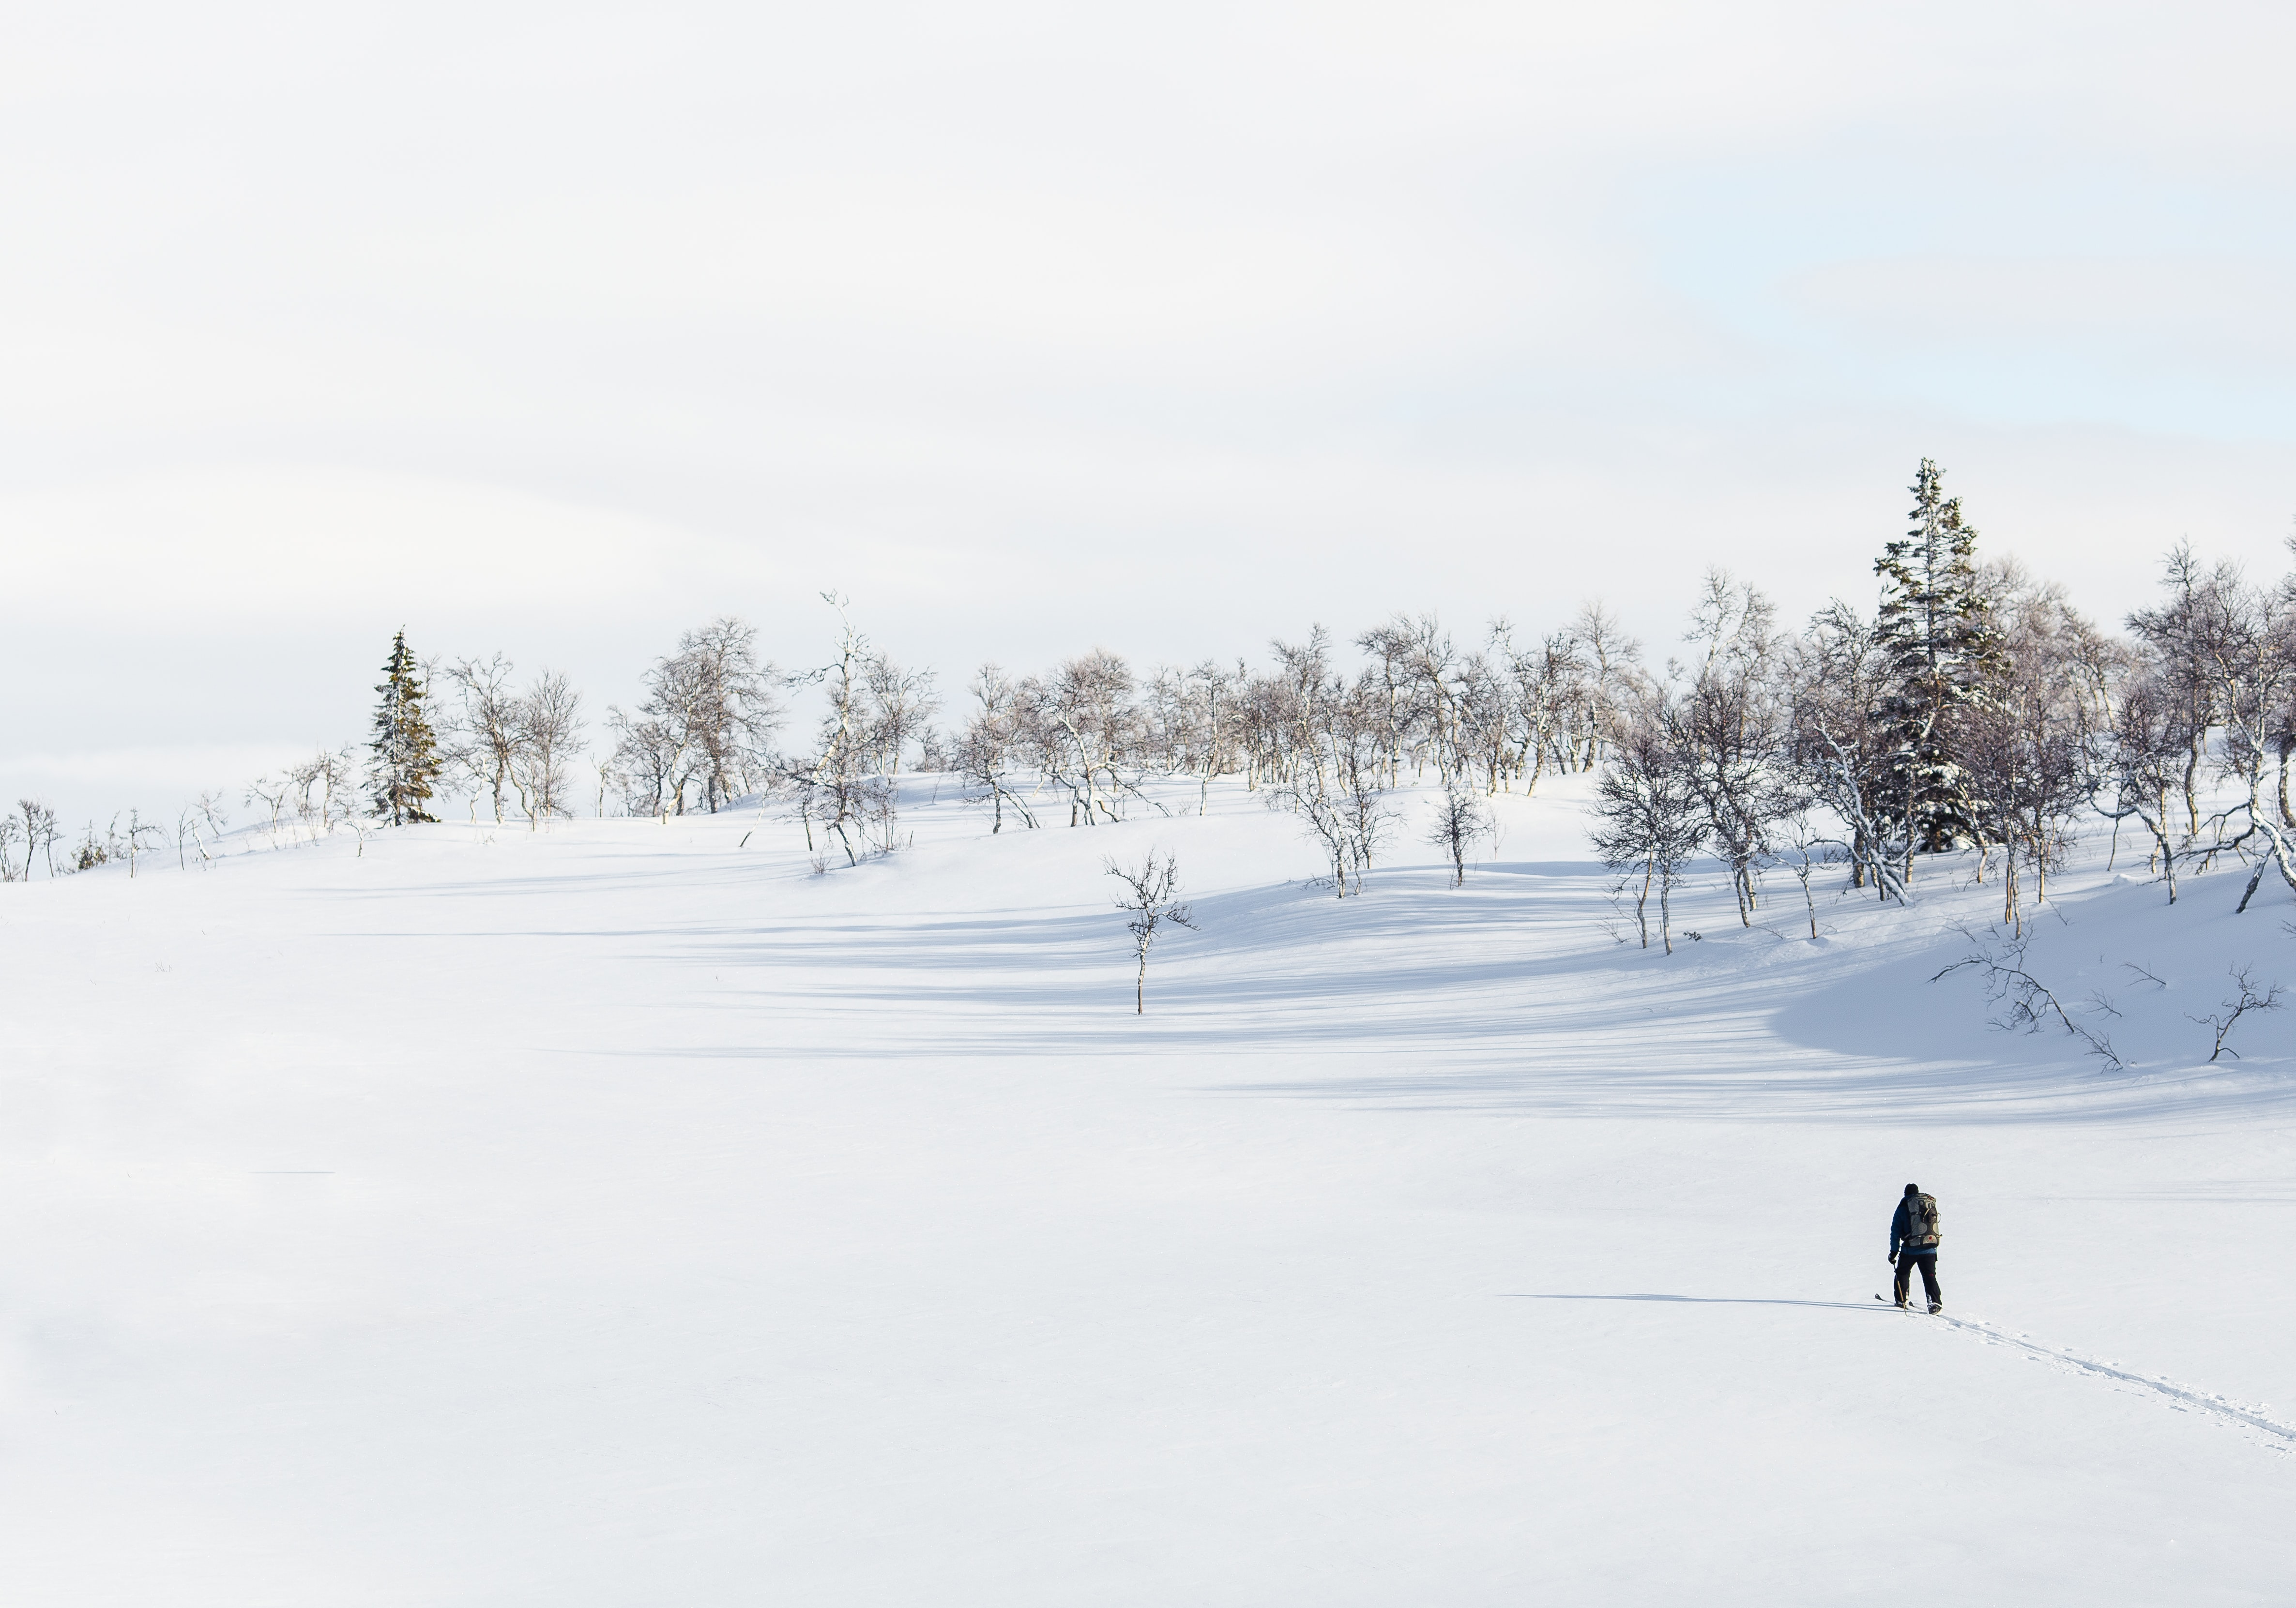 A person hiking in the snow with trees in the pale background